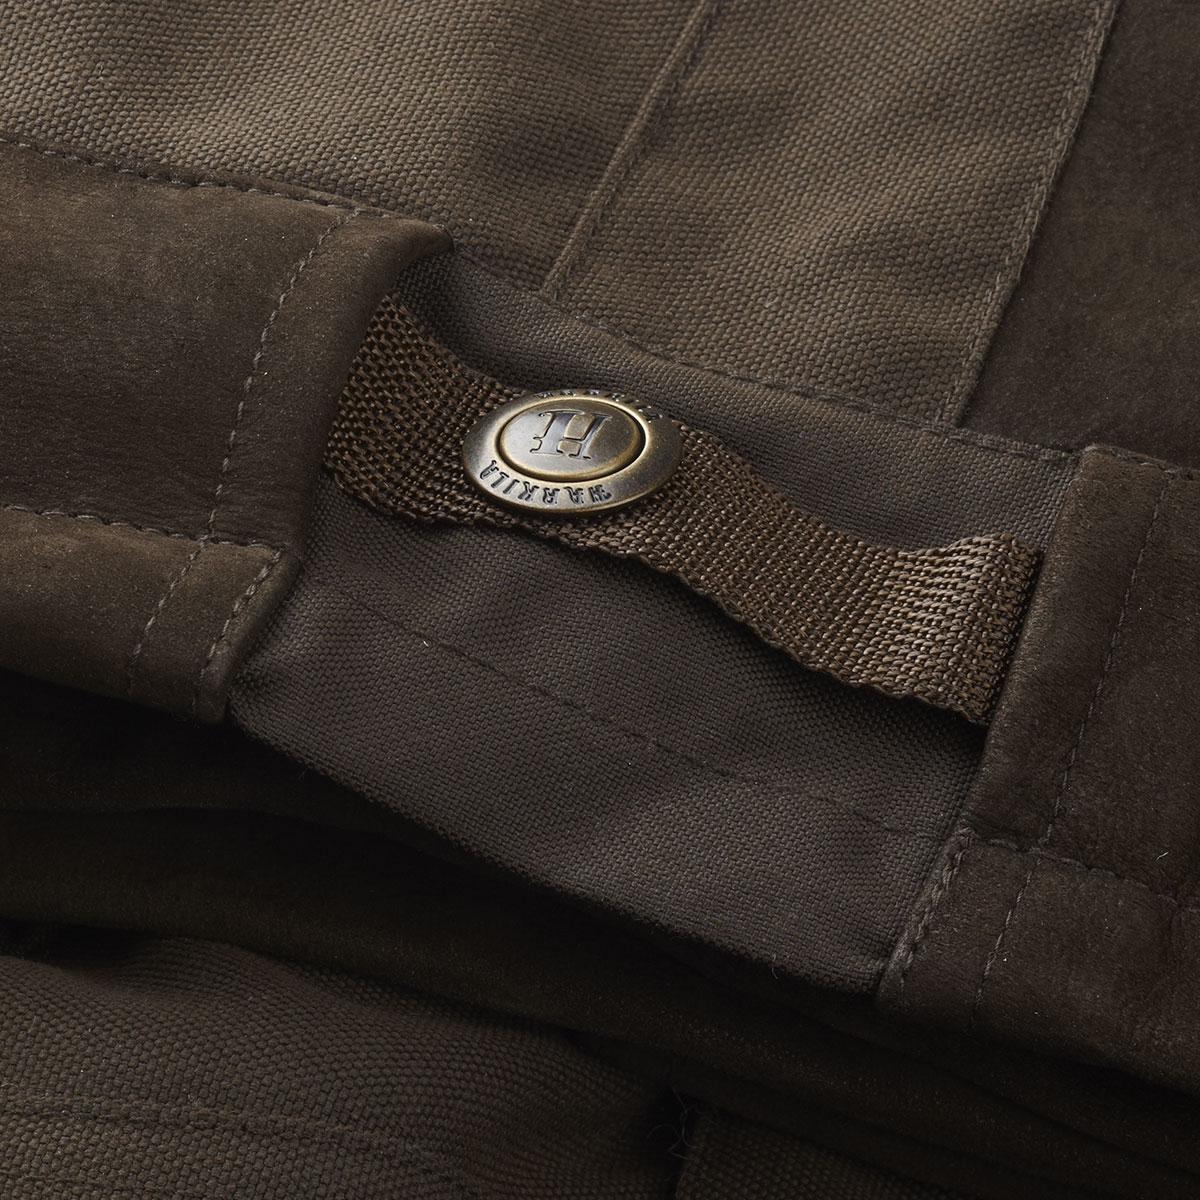 b0a051373492a Outdoor Games & Activities Harkila Pro Hunter X Trousers Shadow Brown  Leisure Sports & Game Room